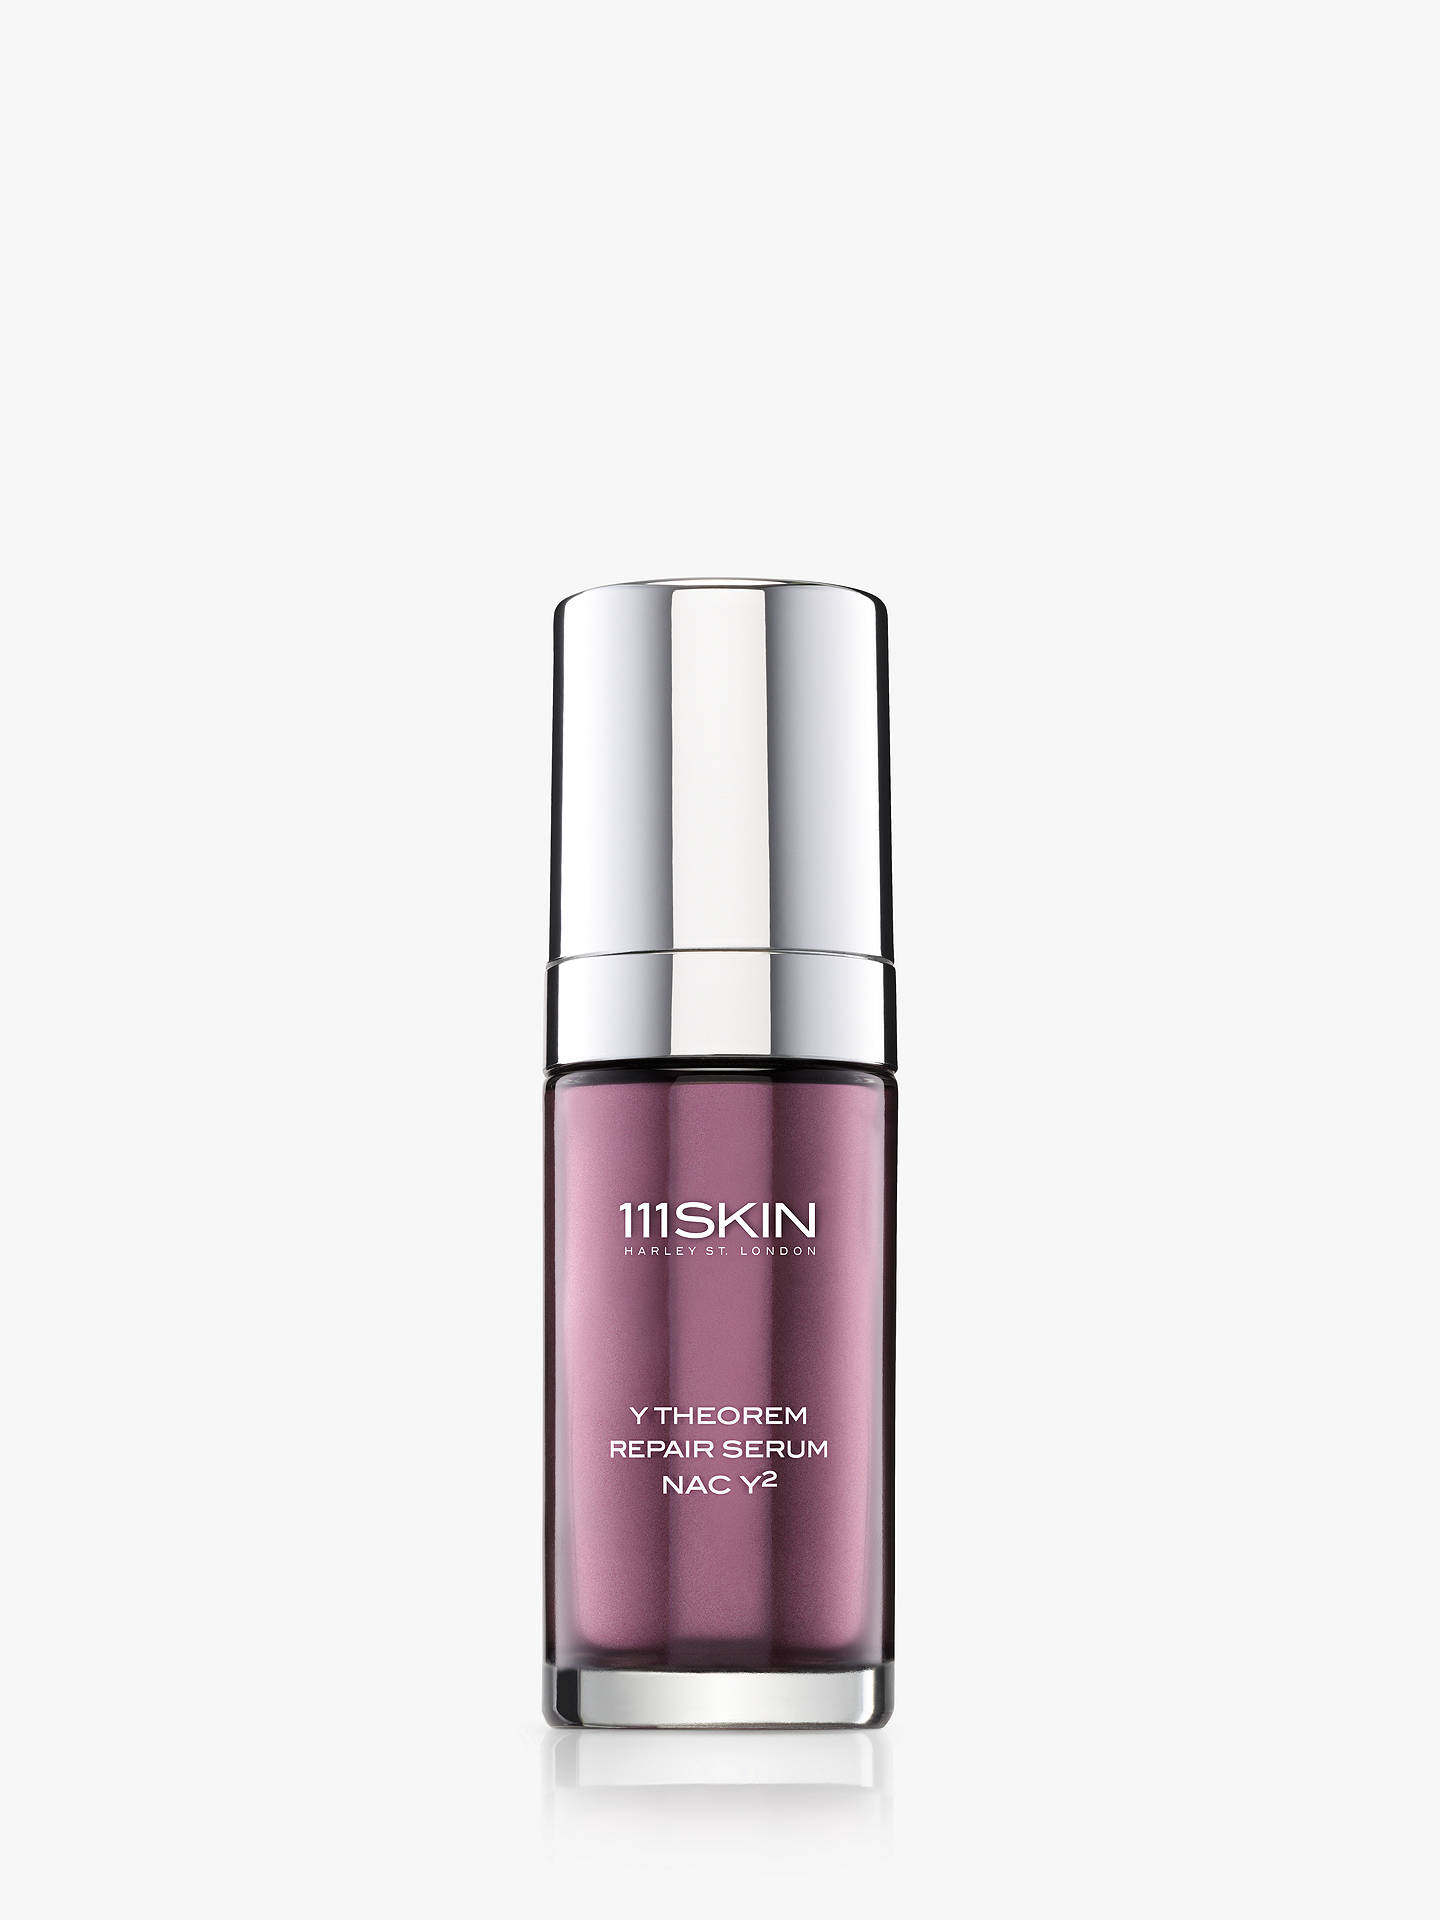 Buy111SKIN Y Theorem Repair Serum, 30ml Online at johnlewis.com